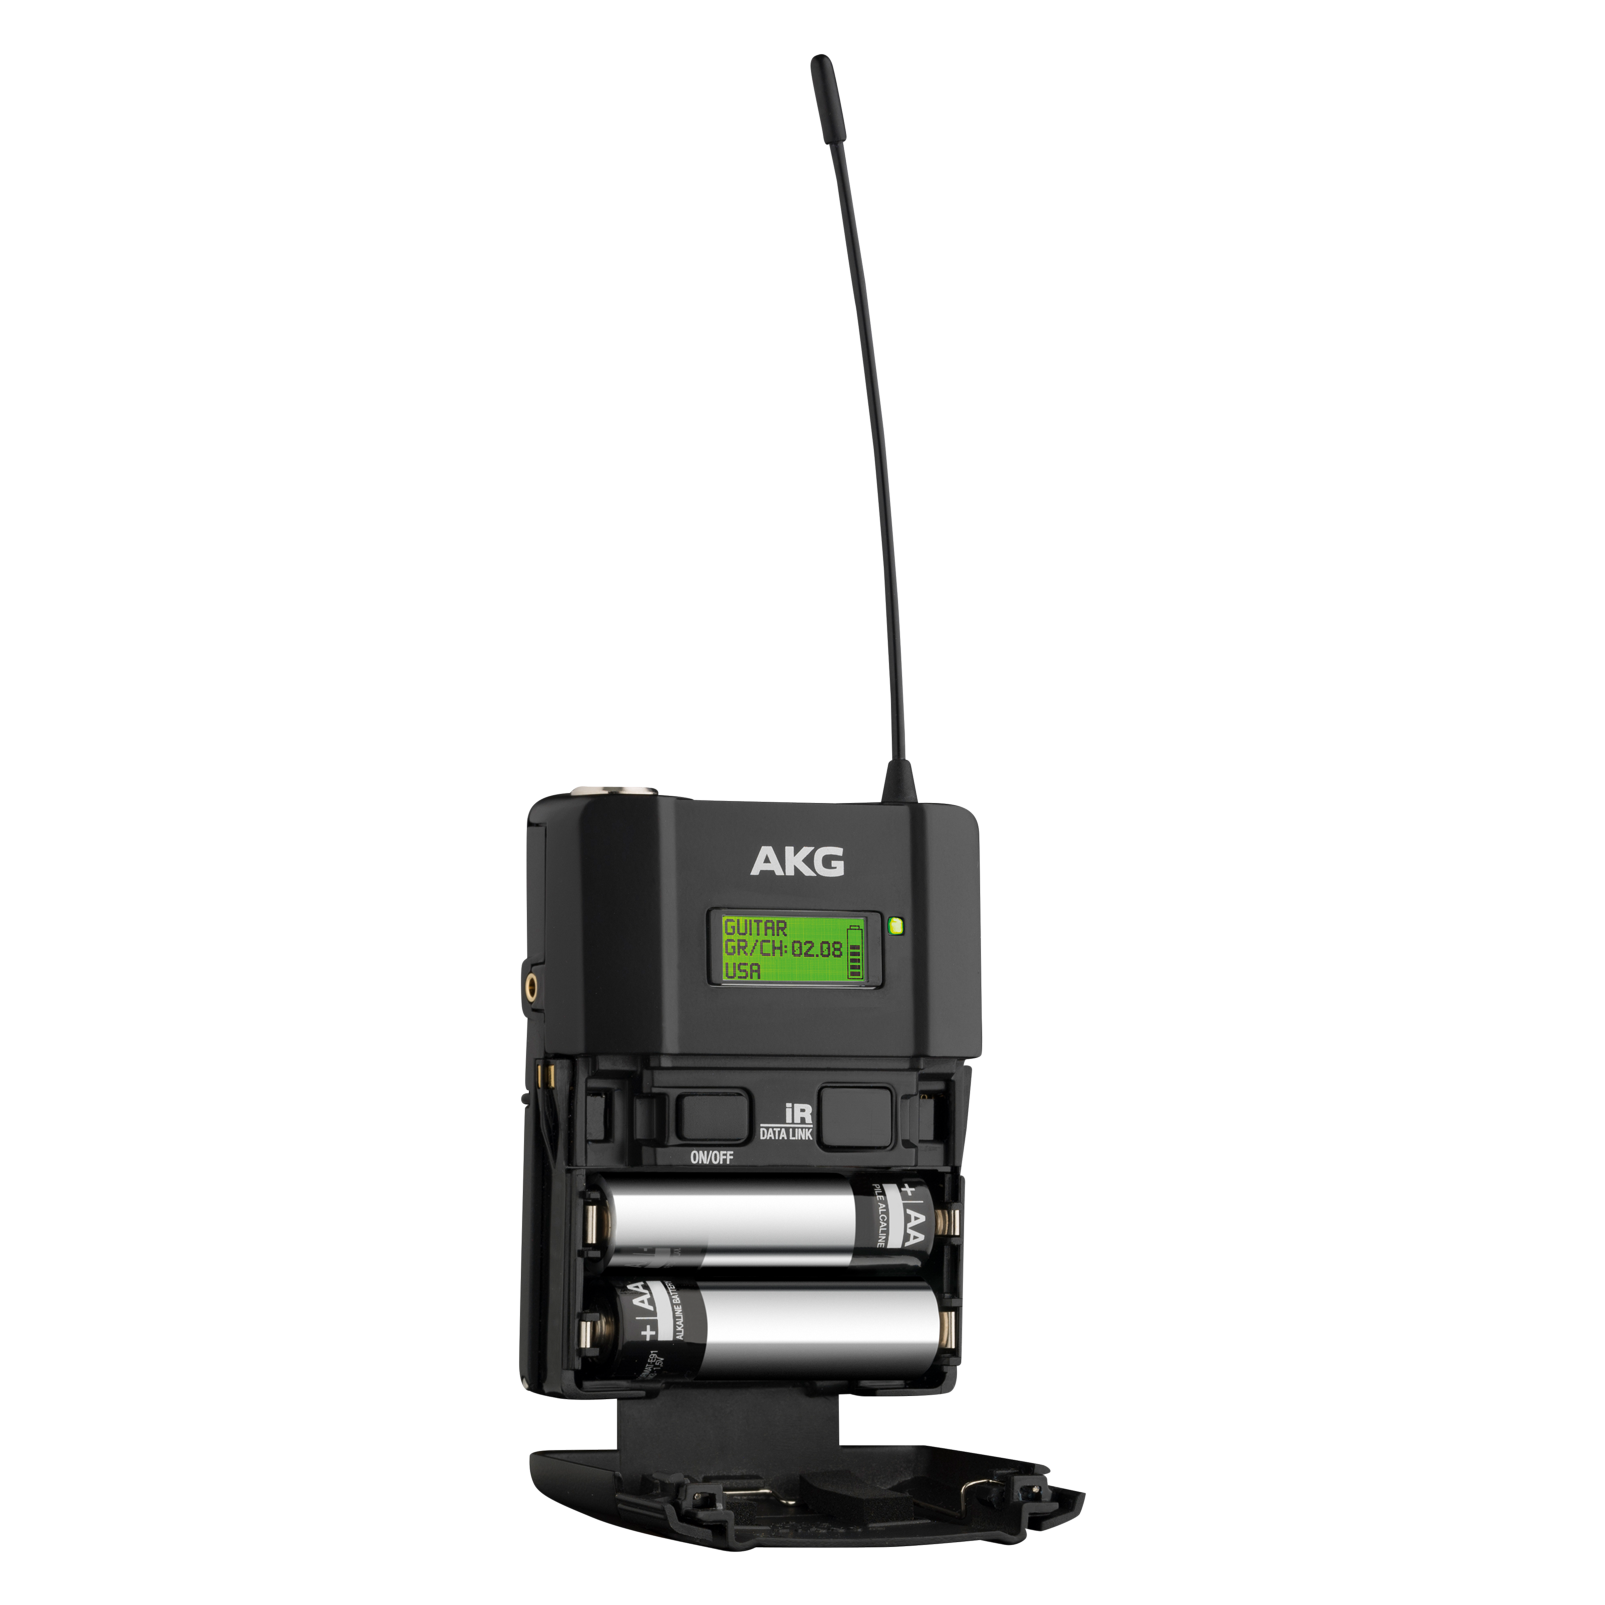 DPT800 Band2 50mW - Black - Reference digital wireless body pack transmitter - Detailshot 1